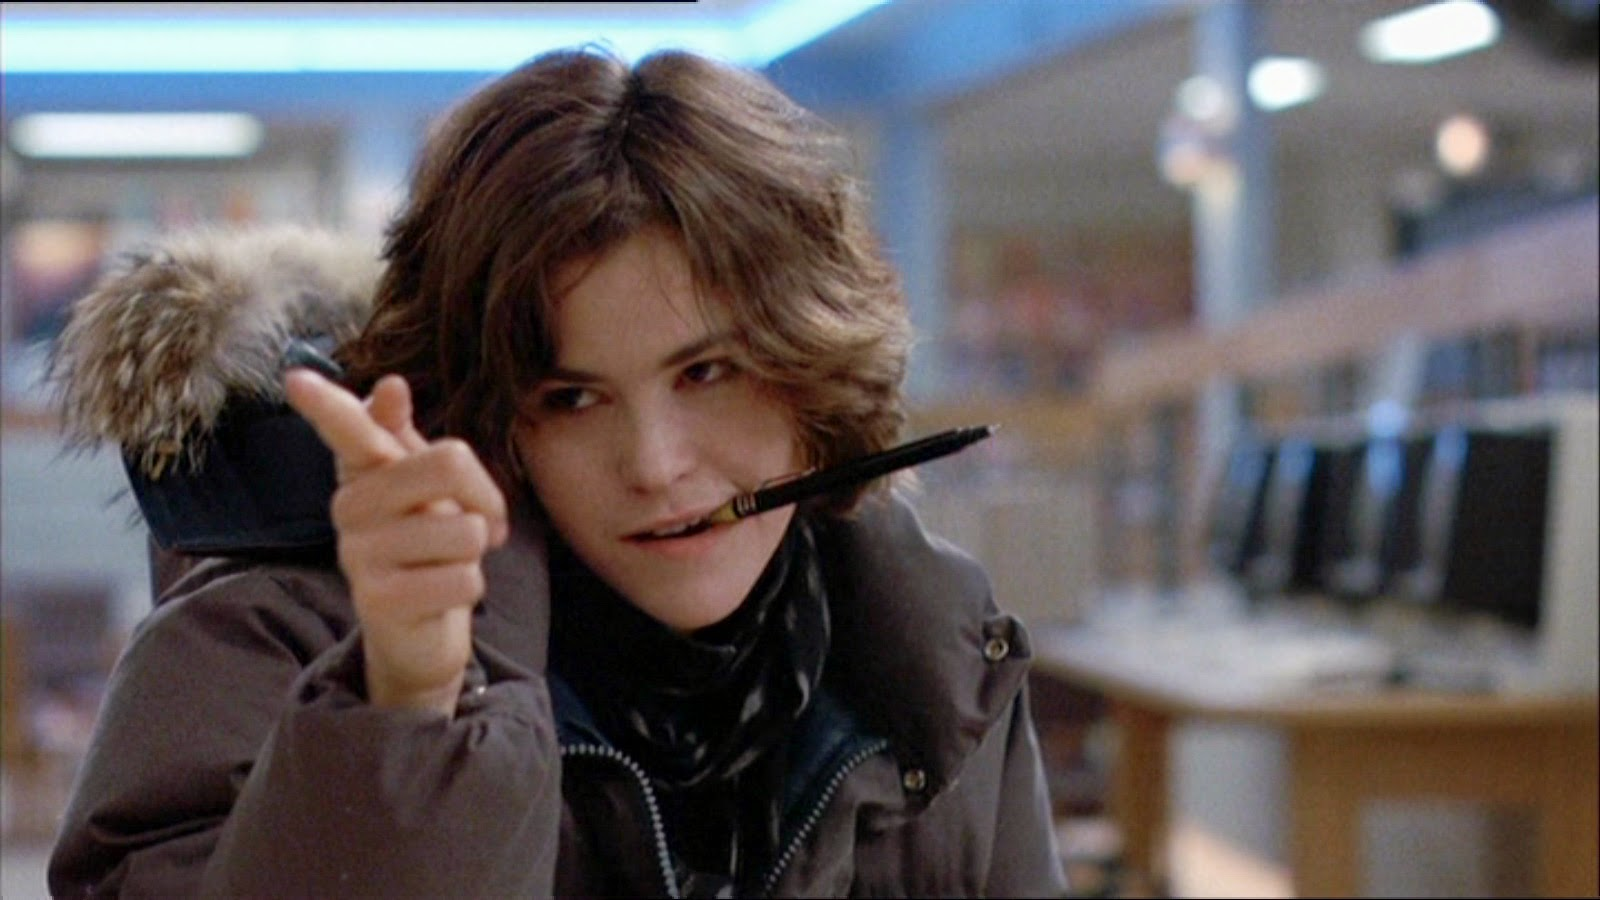 Ally Sheedy Fakes the netflix danger zone: you got the touch!